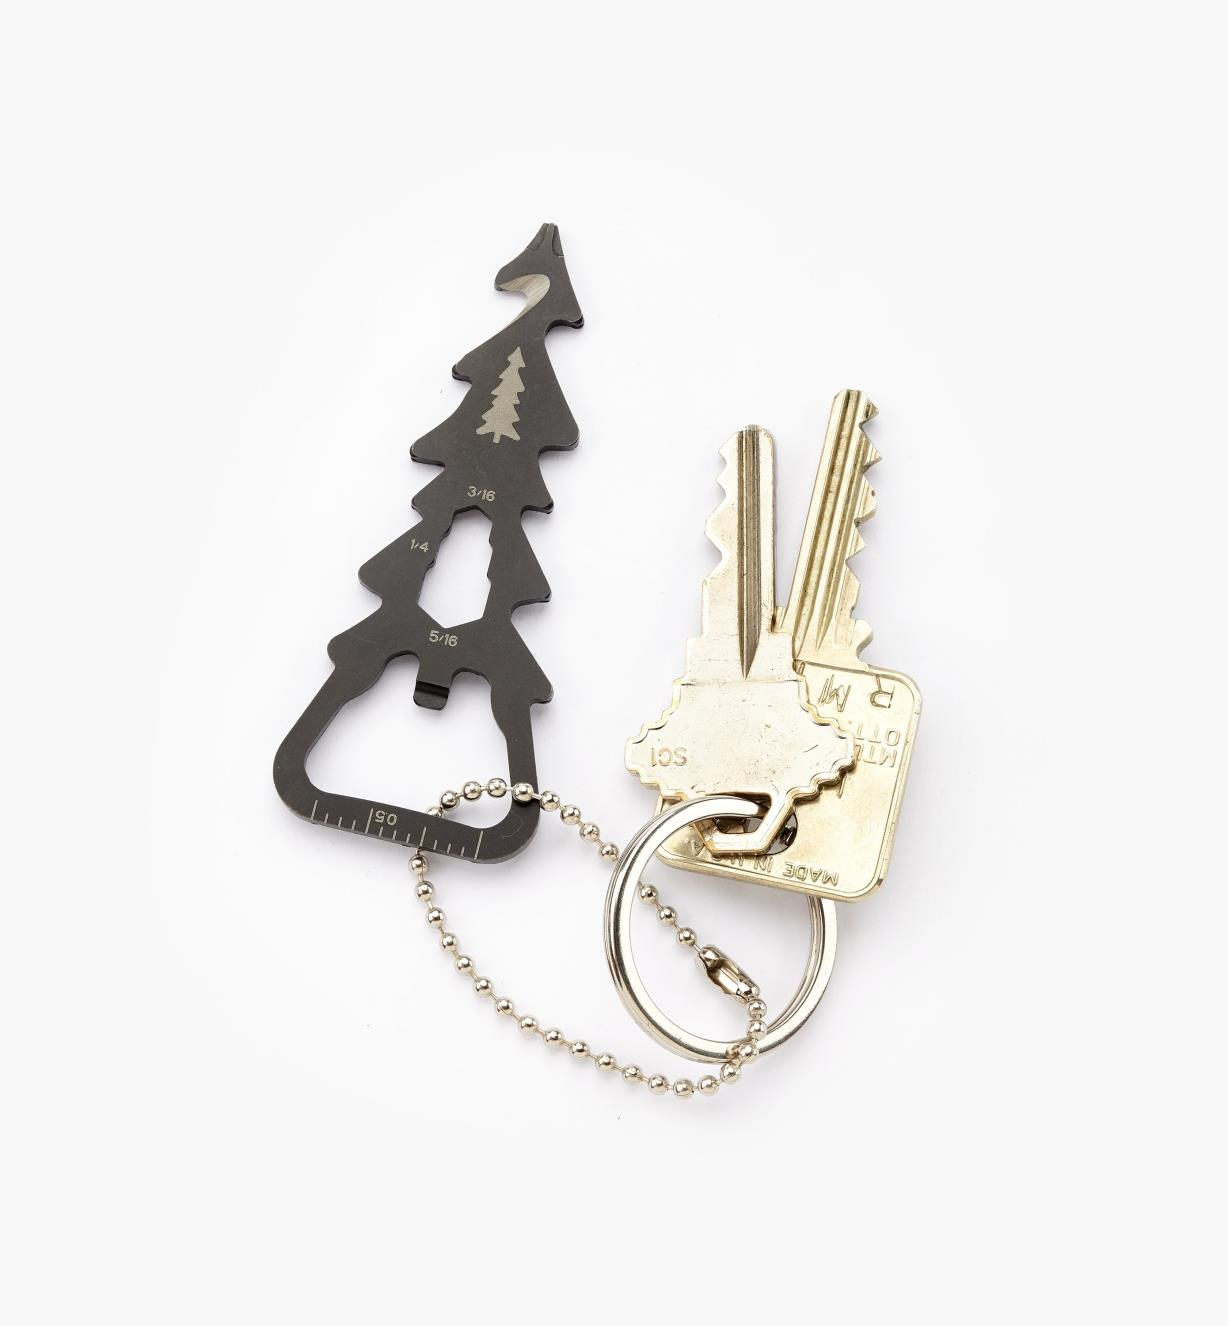 09A0383 - Lee Valley Key-Chain Multi-Tool